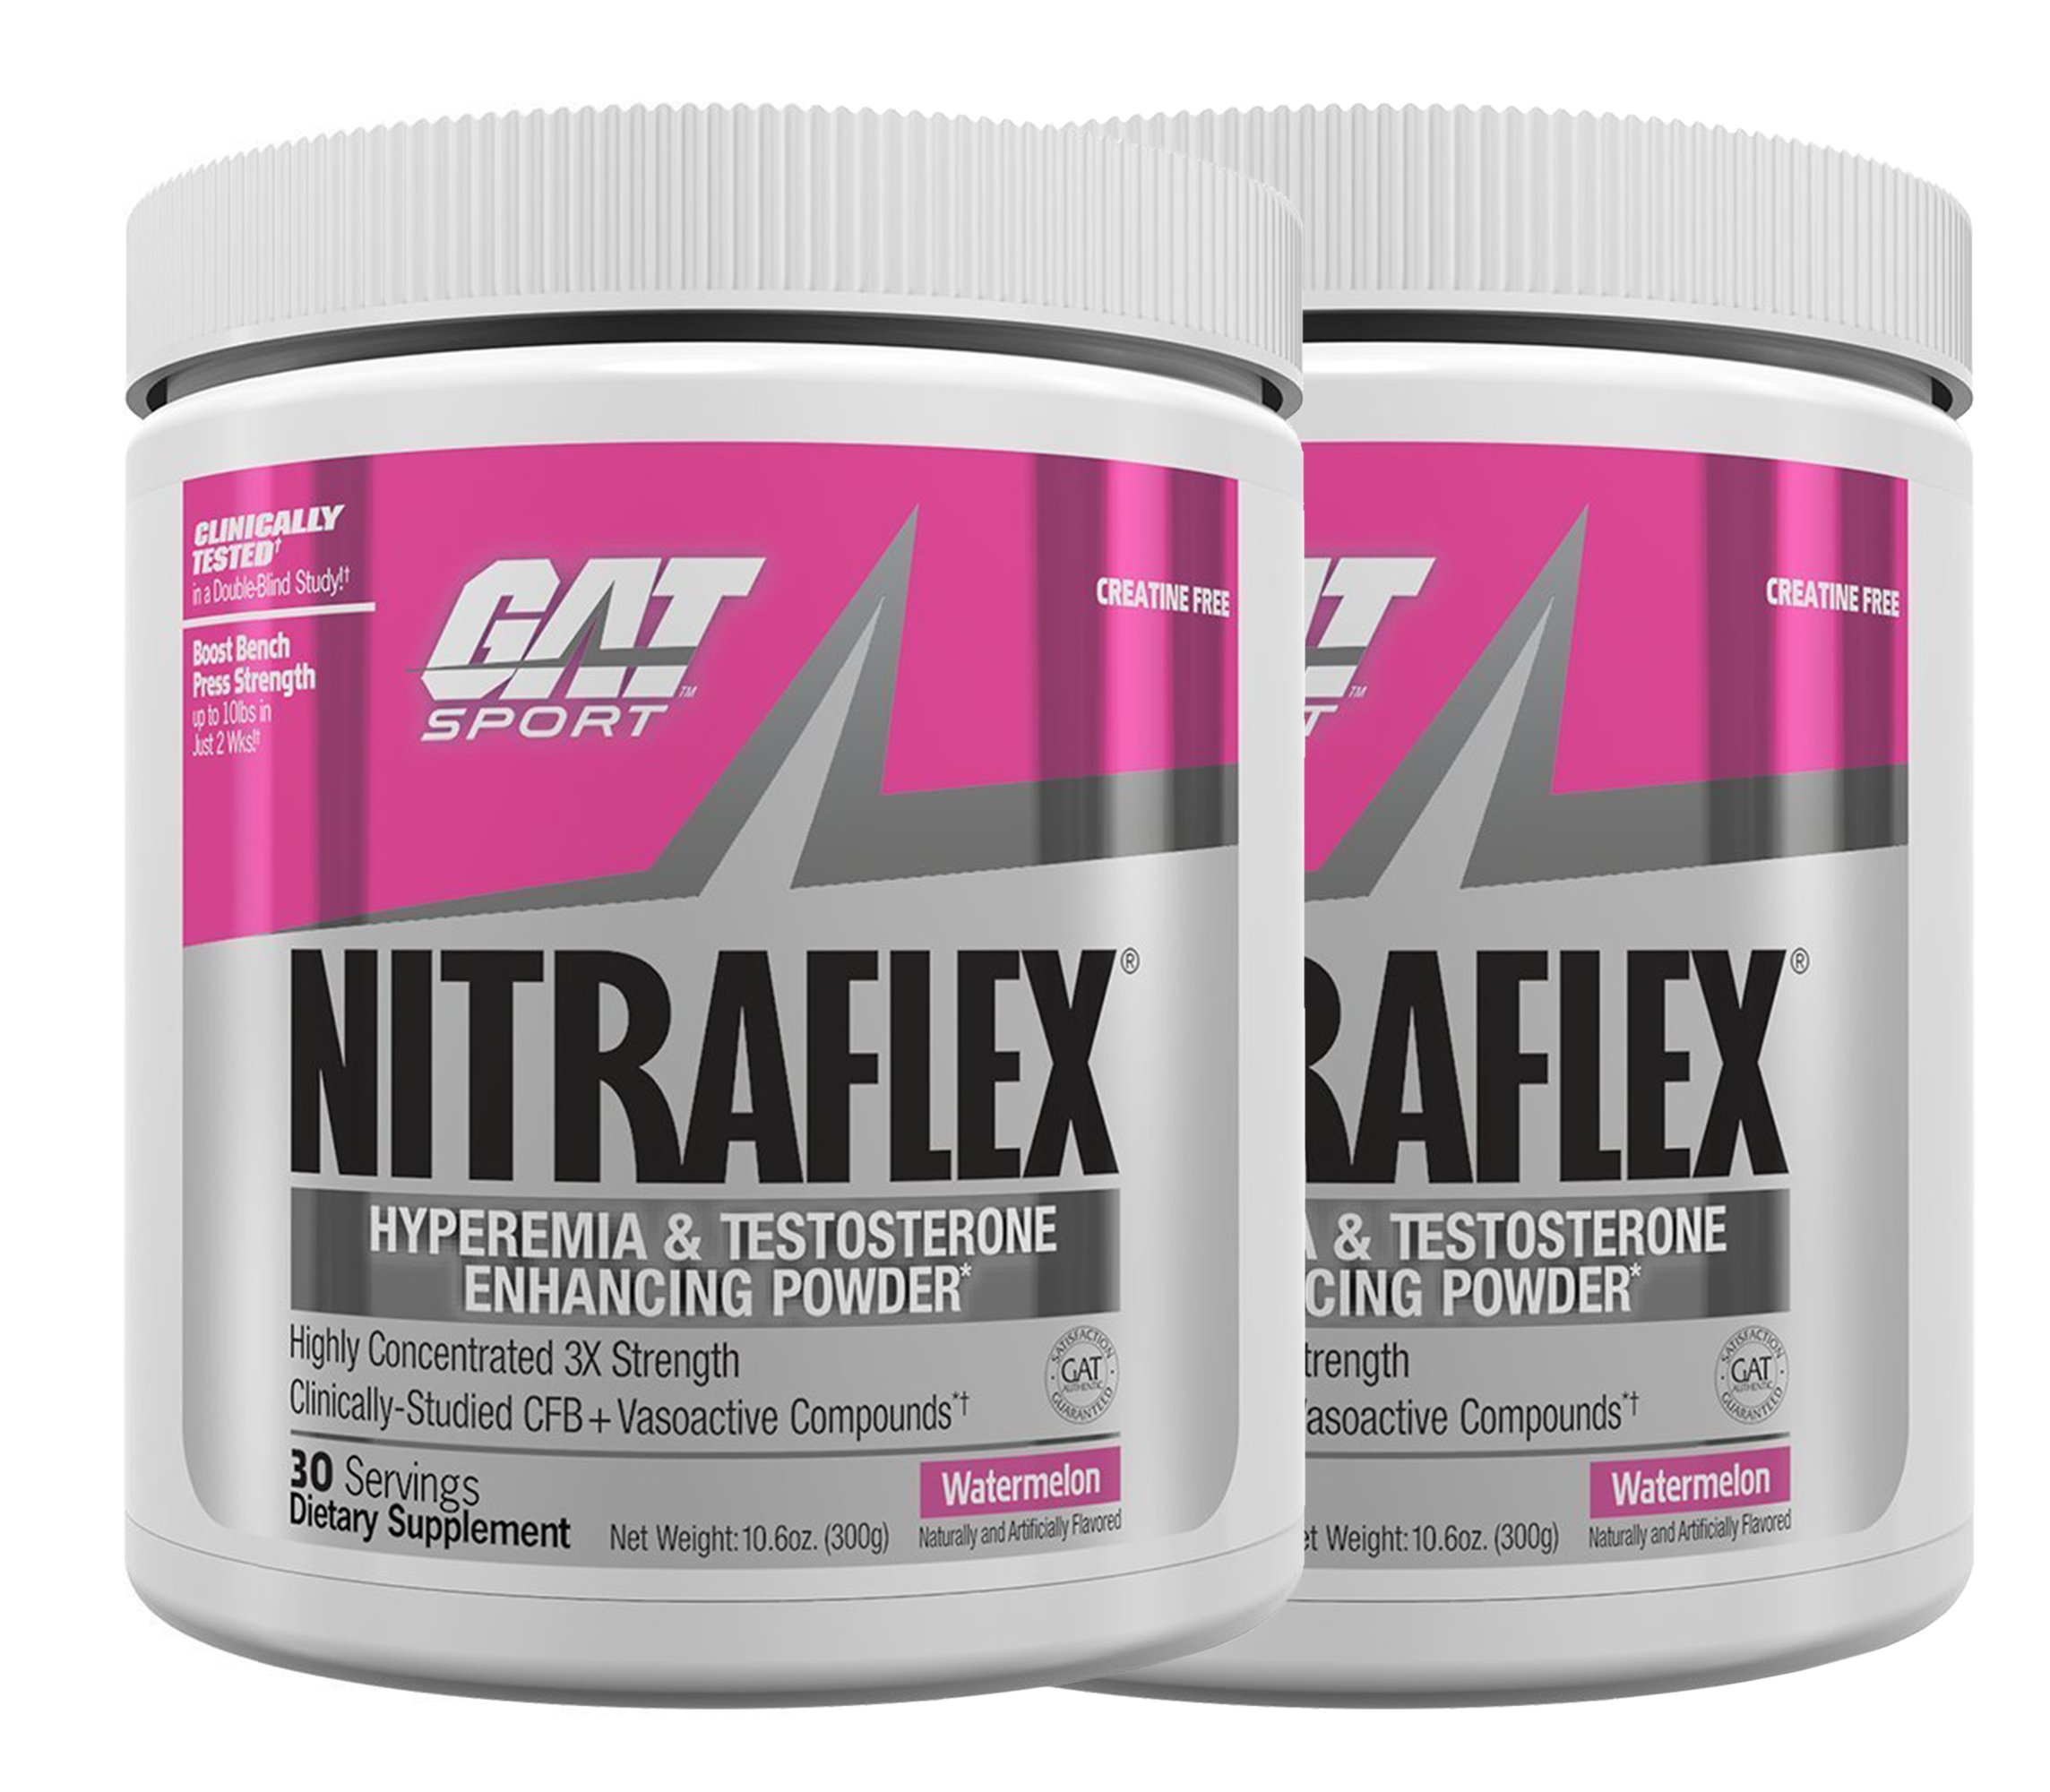 GAT Clinically Tested Nitraflex, Testosterone Enhancing Pre Workout, Watermelon (2 x 300 Gram)